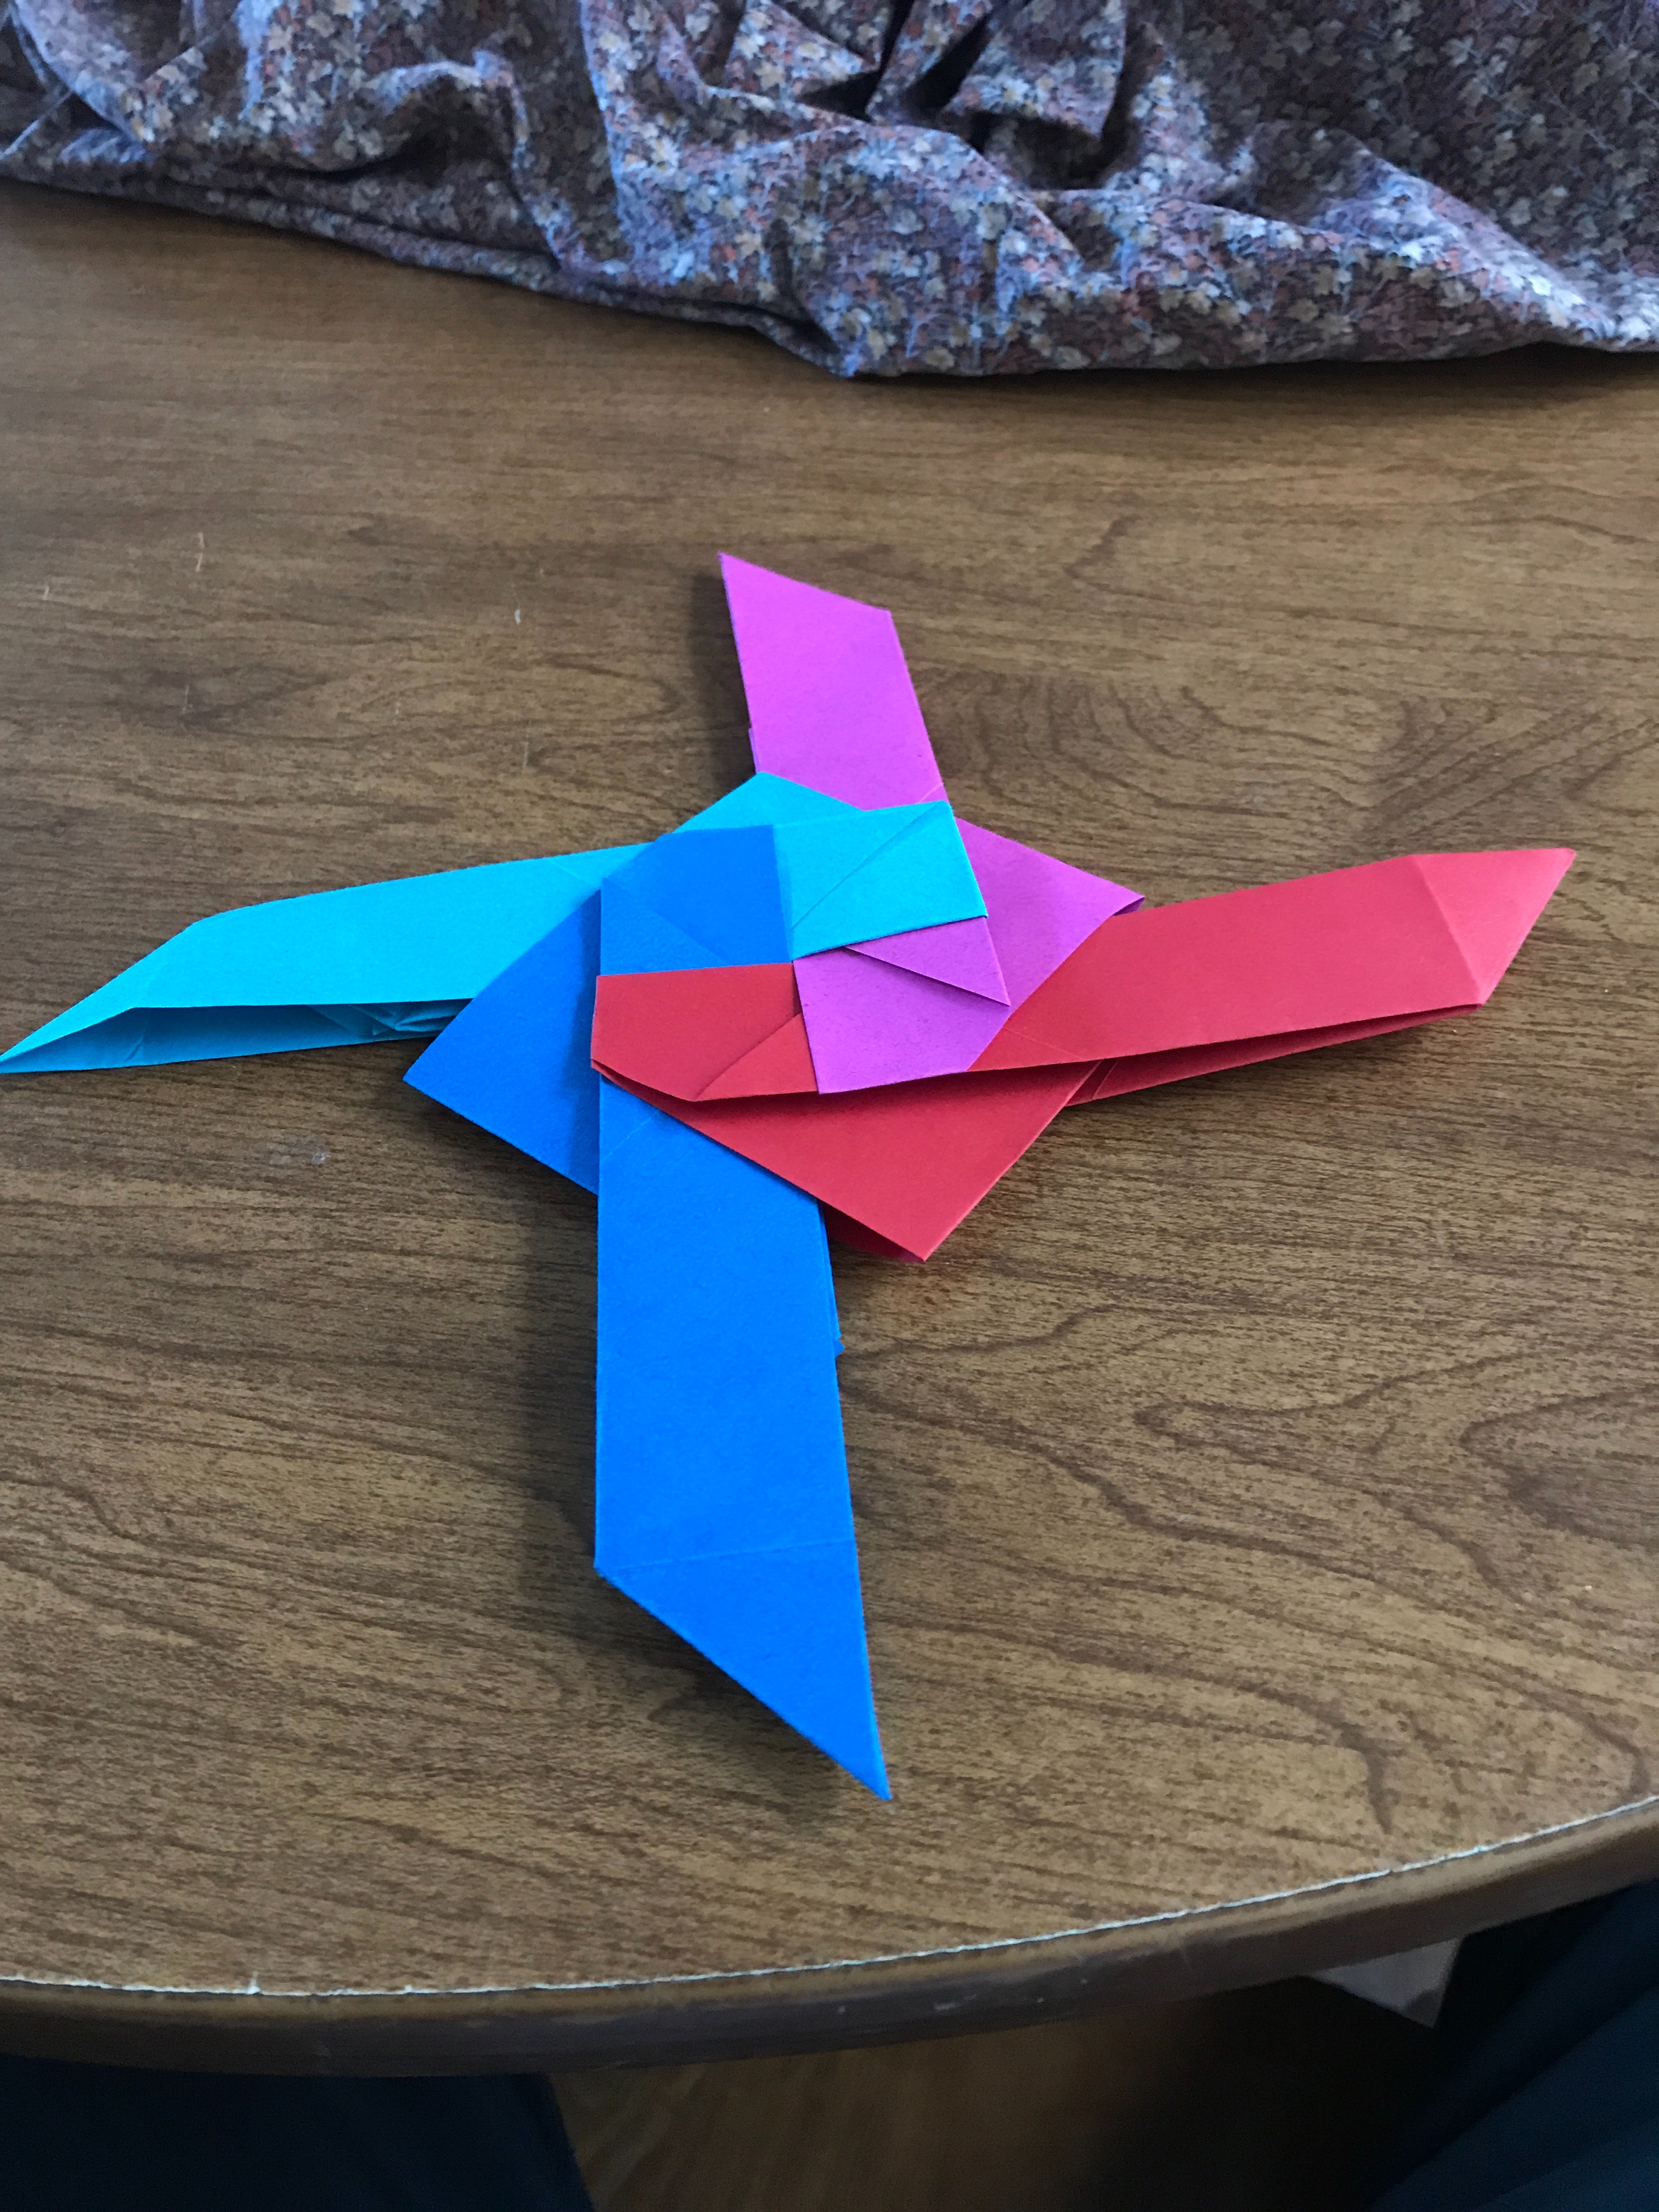 How to Make a 4-Pointed Transforming Ninja Star